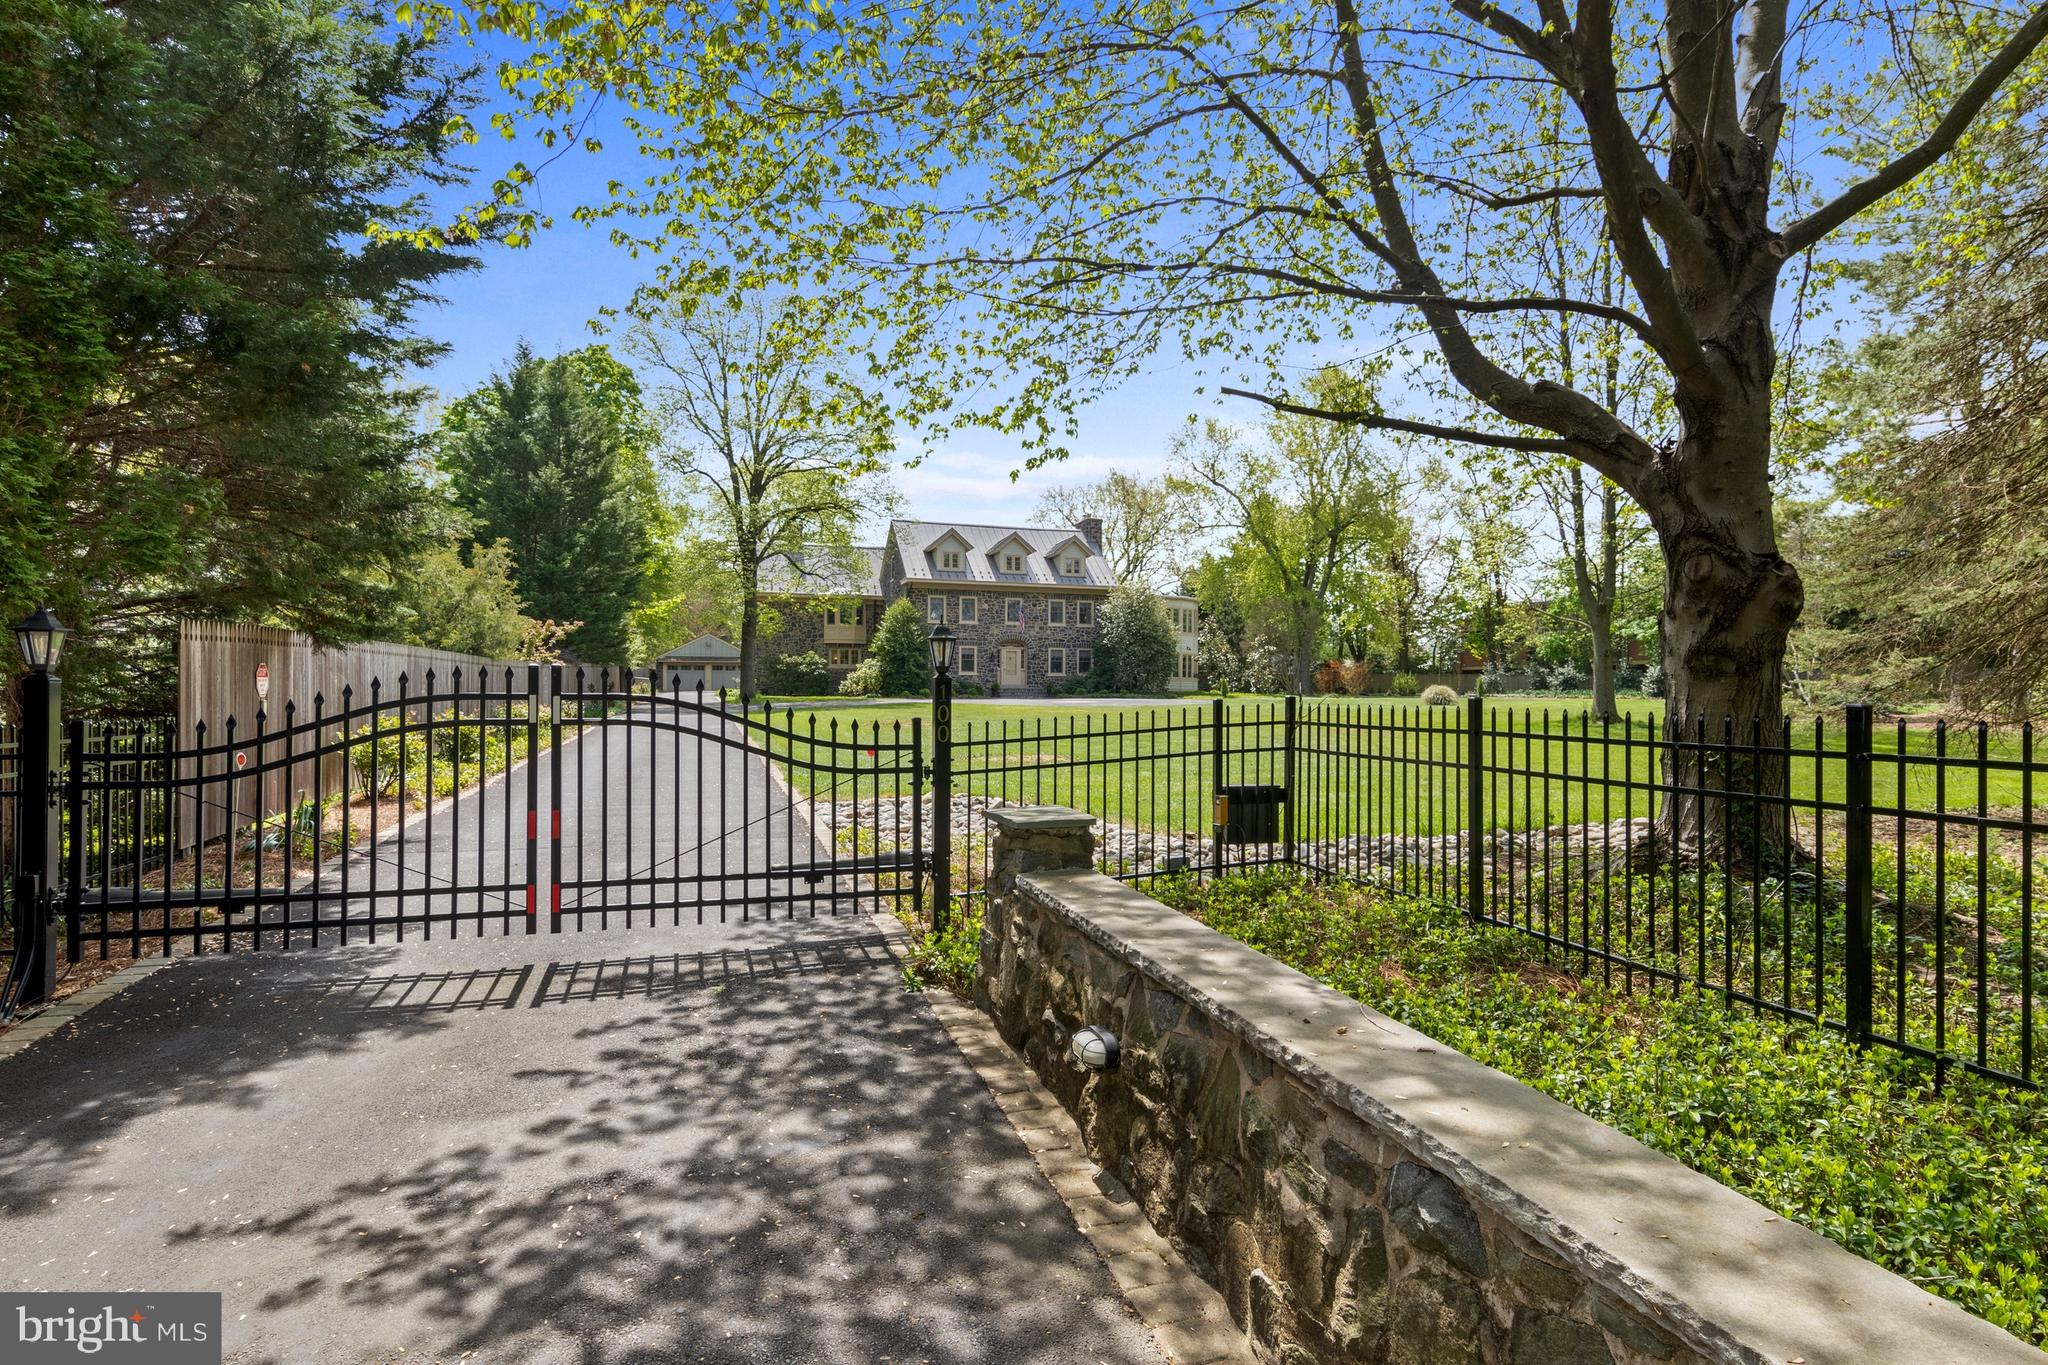 An Oasis in the Heart of Greenville. Enter the gates at 100 Buck Road and feel the cares of the world slide off your shoulders as you arrive at a 1.8-acre park-like estate that is steeped in history, impeccably maintained, and equipped for an active 21st century owner. Built in 1918 from granite, 100 Buck Road has most recently been the happy home of a multigenerational family, who enjoyed large-scale entertaining on a fabulous covered terrace with a TV and firepit. Picture the family  playing hide and seek throughout the house, practicing soccer in the yard, and gathering in the big, welcoming kitchen. It's a truly unique place that is peaceful, private—and just a short stroll to Greenville's shops and restaurants. The property is an ideal location for professionals who could work from their very own oval office overlooking the verdant grounds, a spacious semi-circular sunroom equipped with audio-visual equipment. Zip around the grounds by golf cart and enjoy birdwatching, gardening, or working in a dedicated professional-style woodshop. With parking for 16 vehicles, the property is zoned for an owner-occupied business, including a bed-and-breakfast inn.  A stunning second-floor library features wood paneling and a secret door. Modern owners will appreciate more than $1 million in renovations, including zoned heating and cooling, updated windows and standing-seam metal roof.